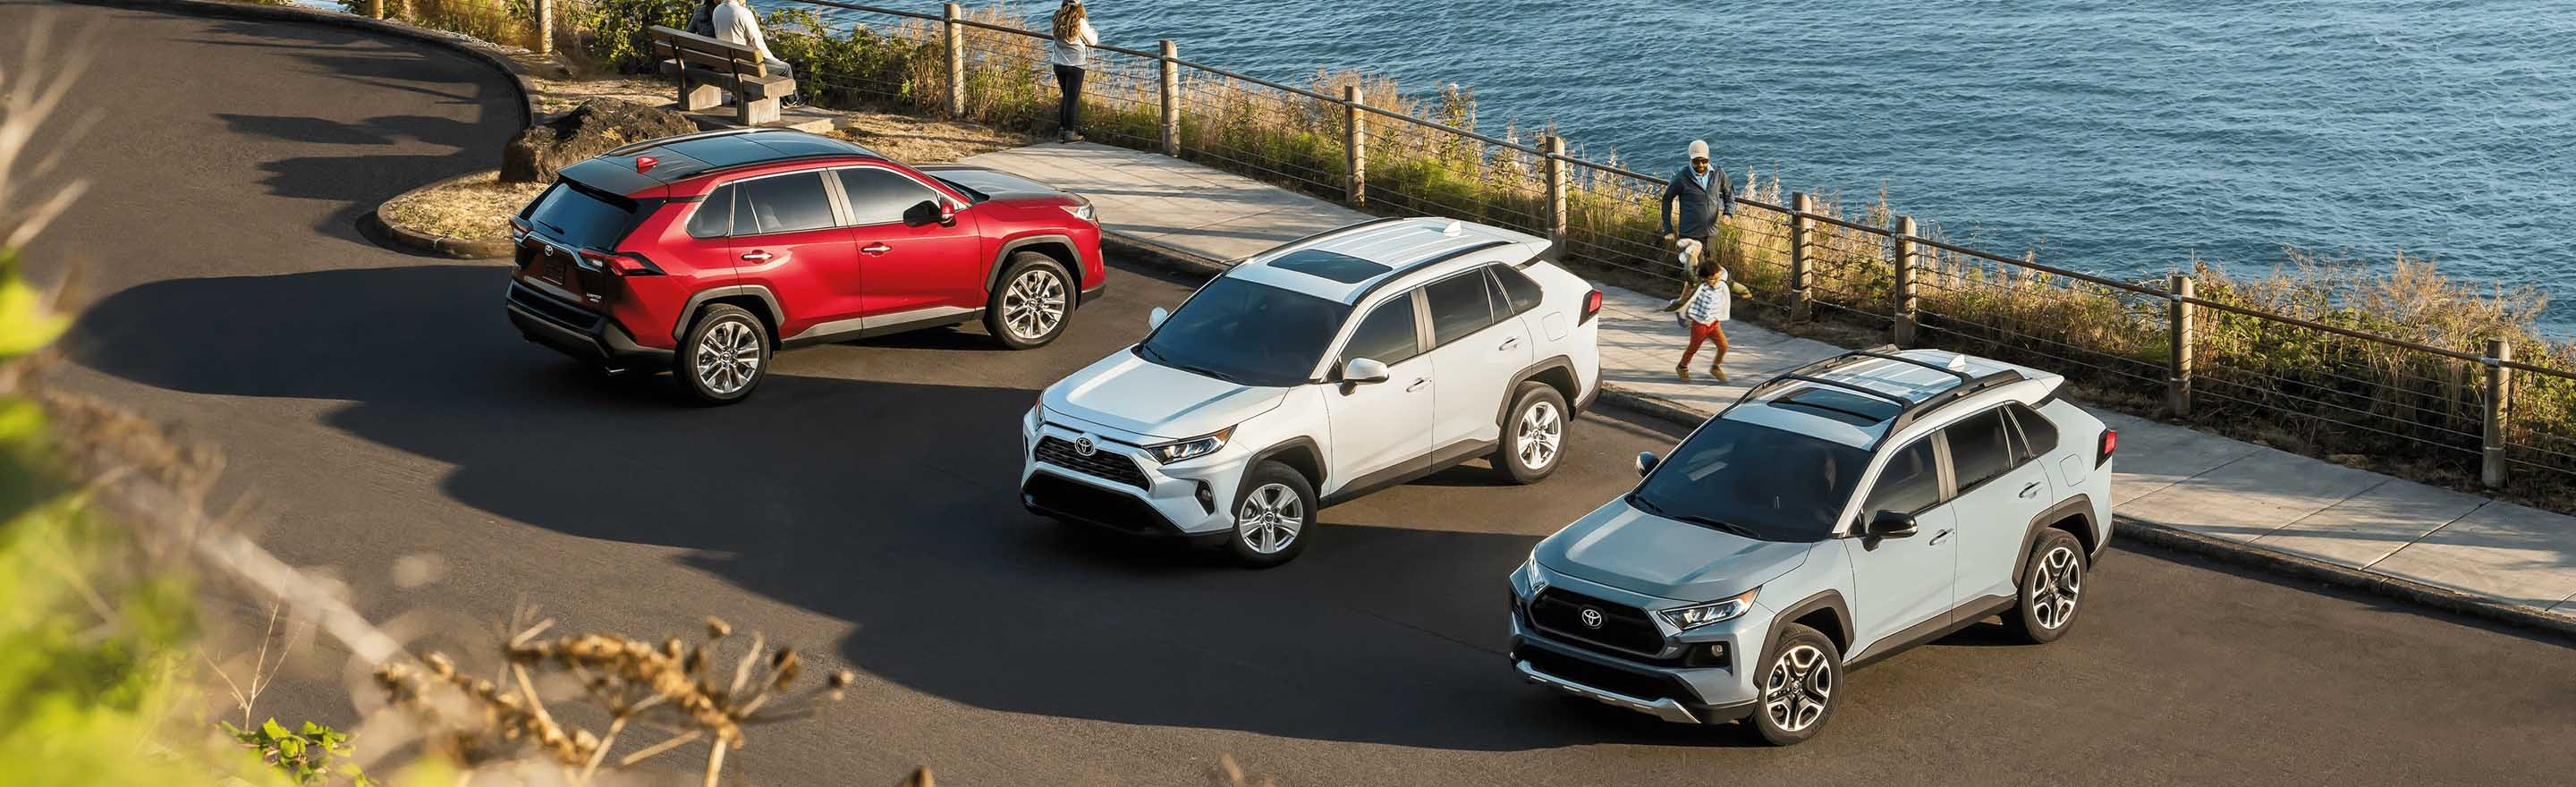 2020 Toyota RAV4 SUVs in Pleasant Hills, PA, at Ken Ganley Toyota